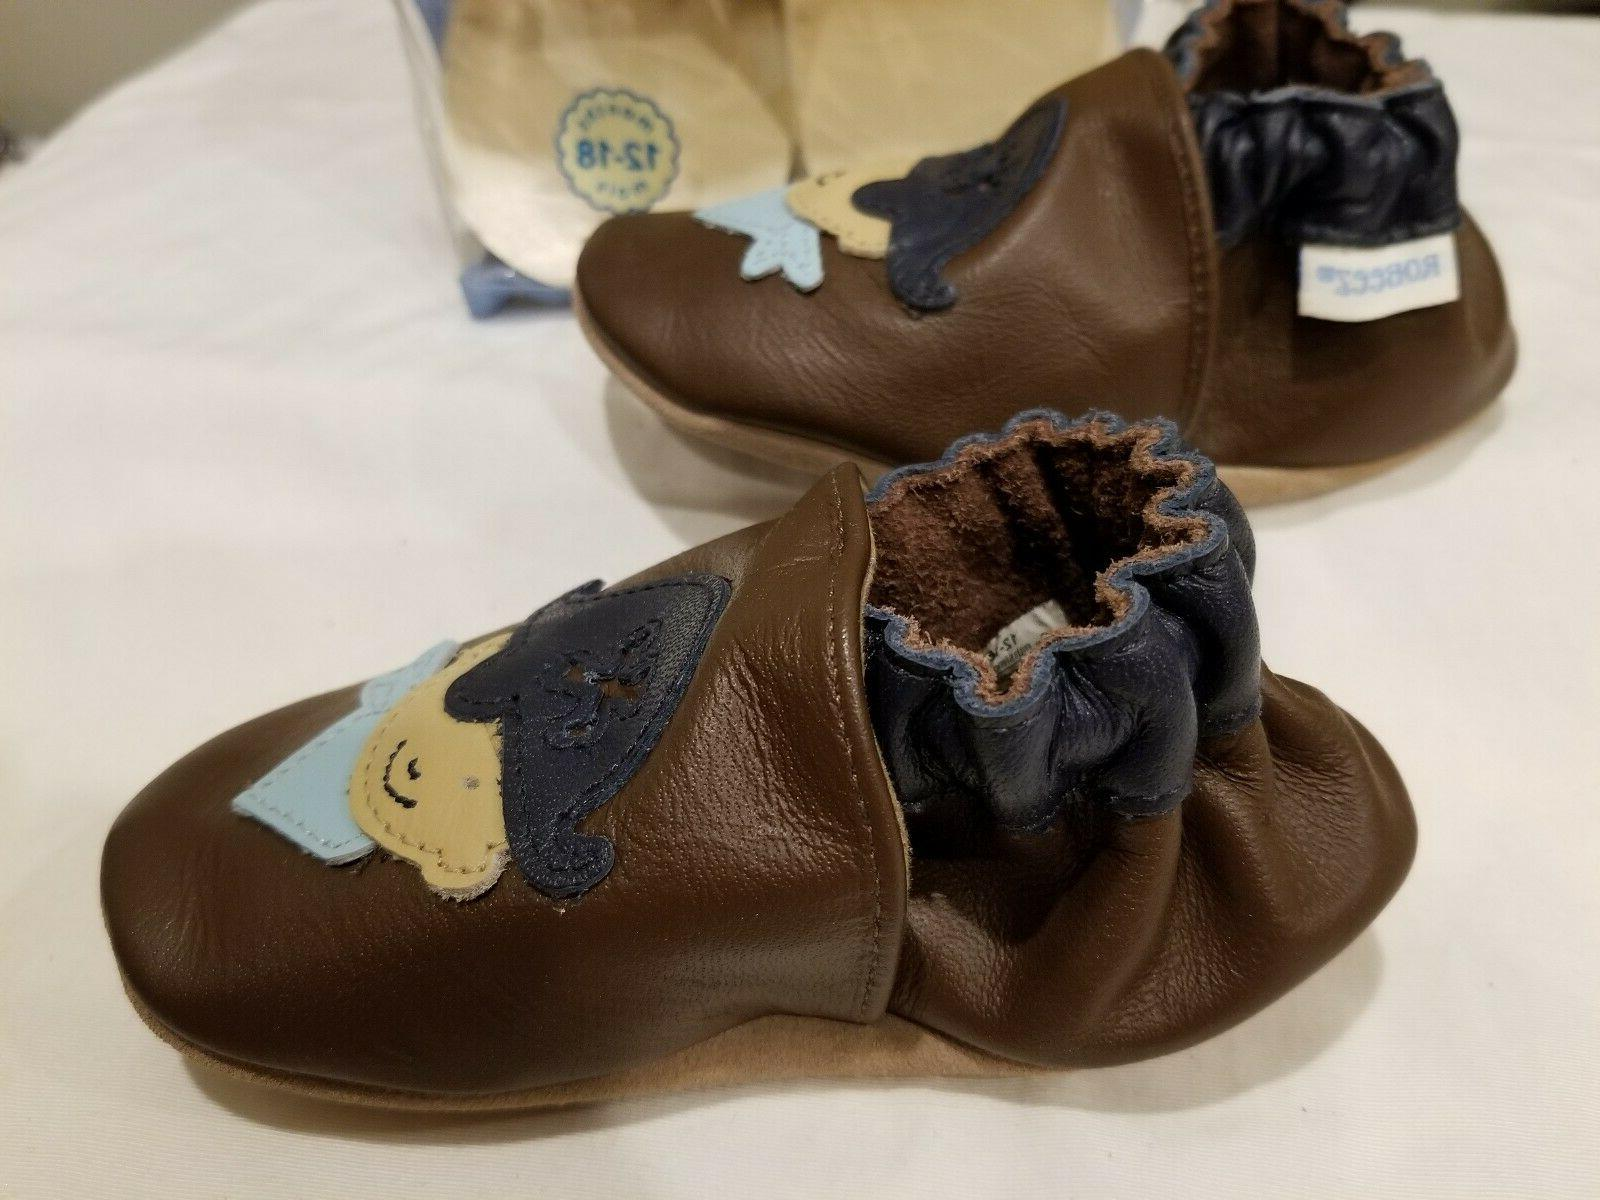 Robeez Baby Brown Sole Shoes sizes